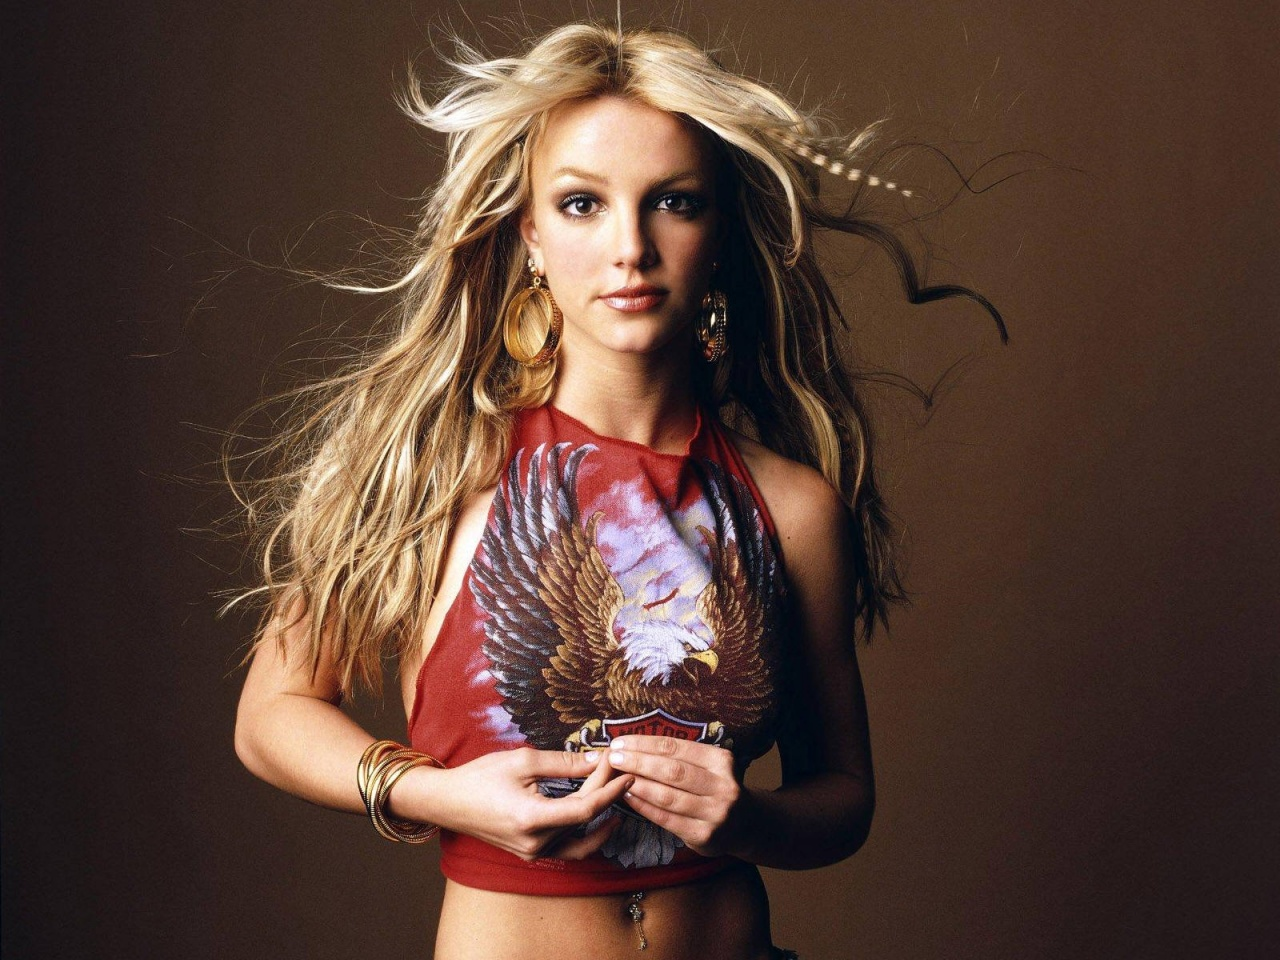 http://4.bp.blogspot.com/-IXnOi4rCLxA/TtZHKb6iIYI/AAAAAAAAA40/EWlyimPtydI/s1600/britney_spears_model_and_singer_wallpaper.jpg